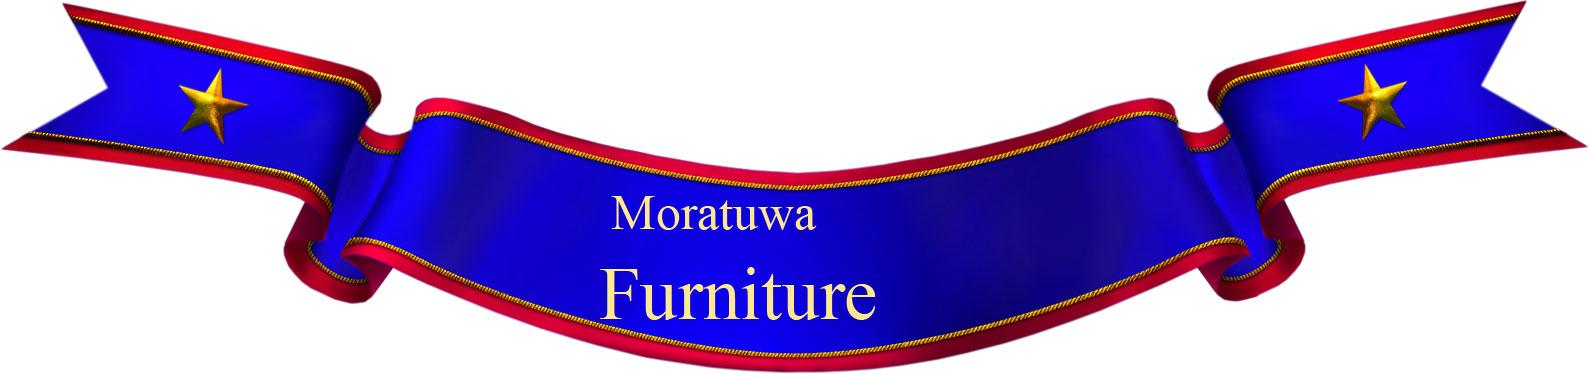 Moratuwa Furniture